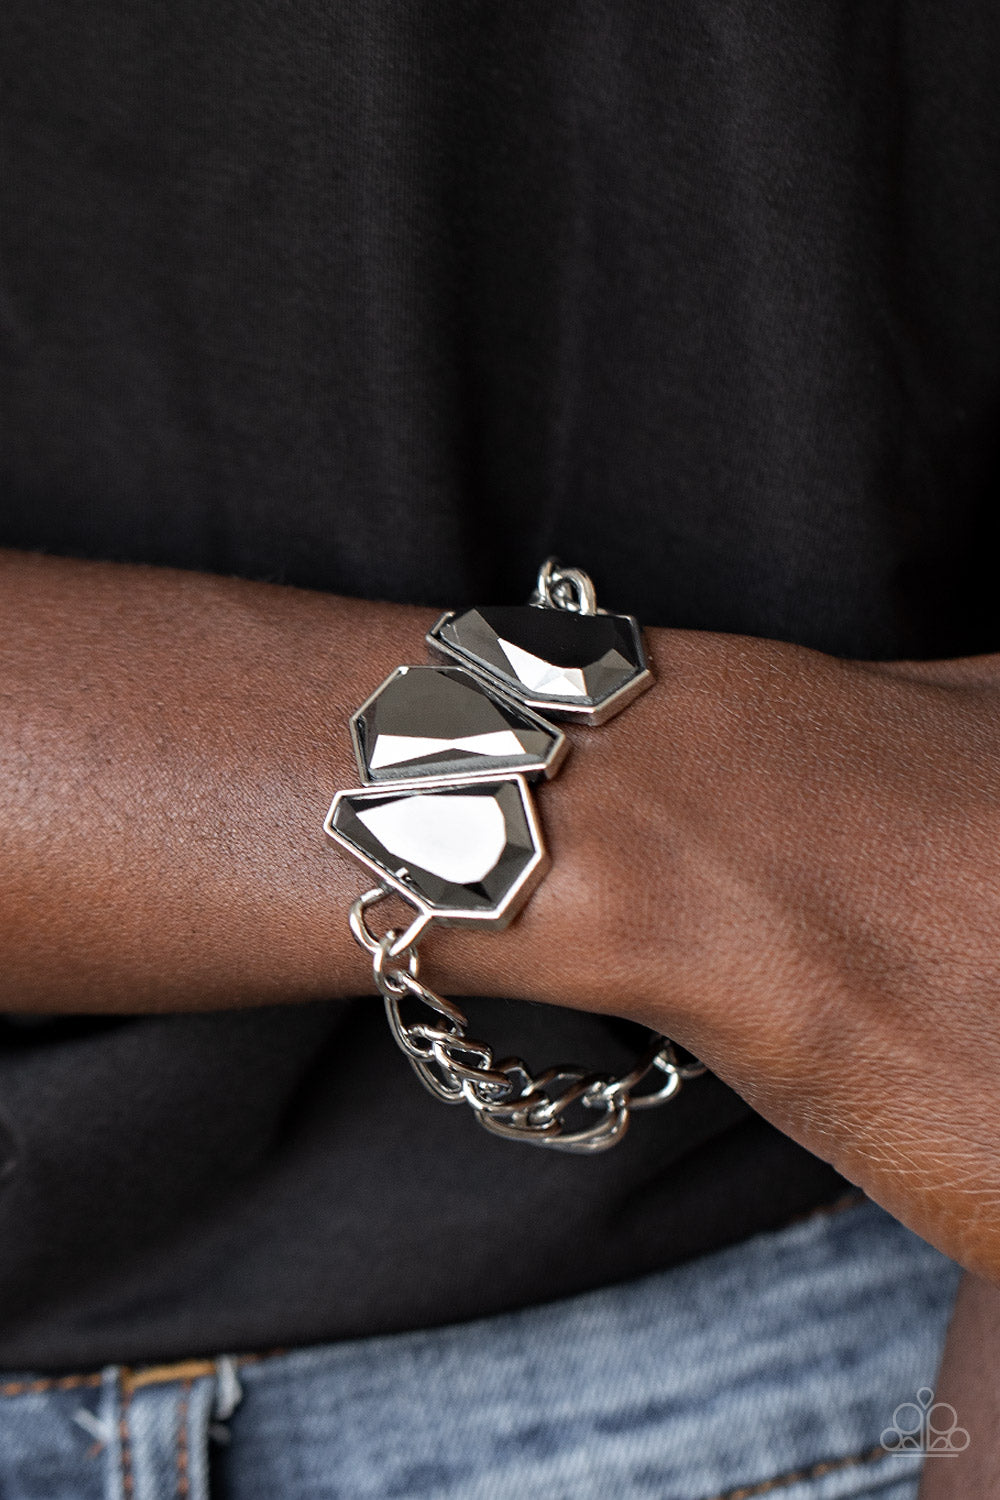 Paparazzi Jewelry & Accessories - Raw Radiance - Silver Bracelet. Bling By Titia Boutique